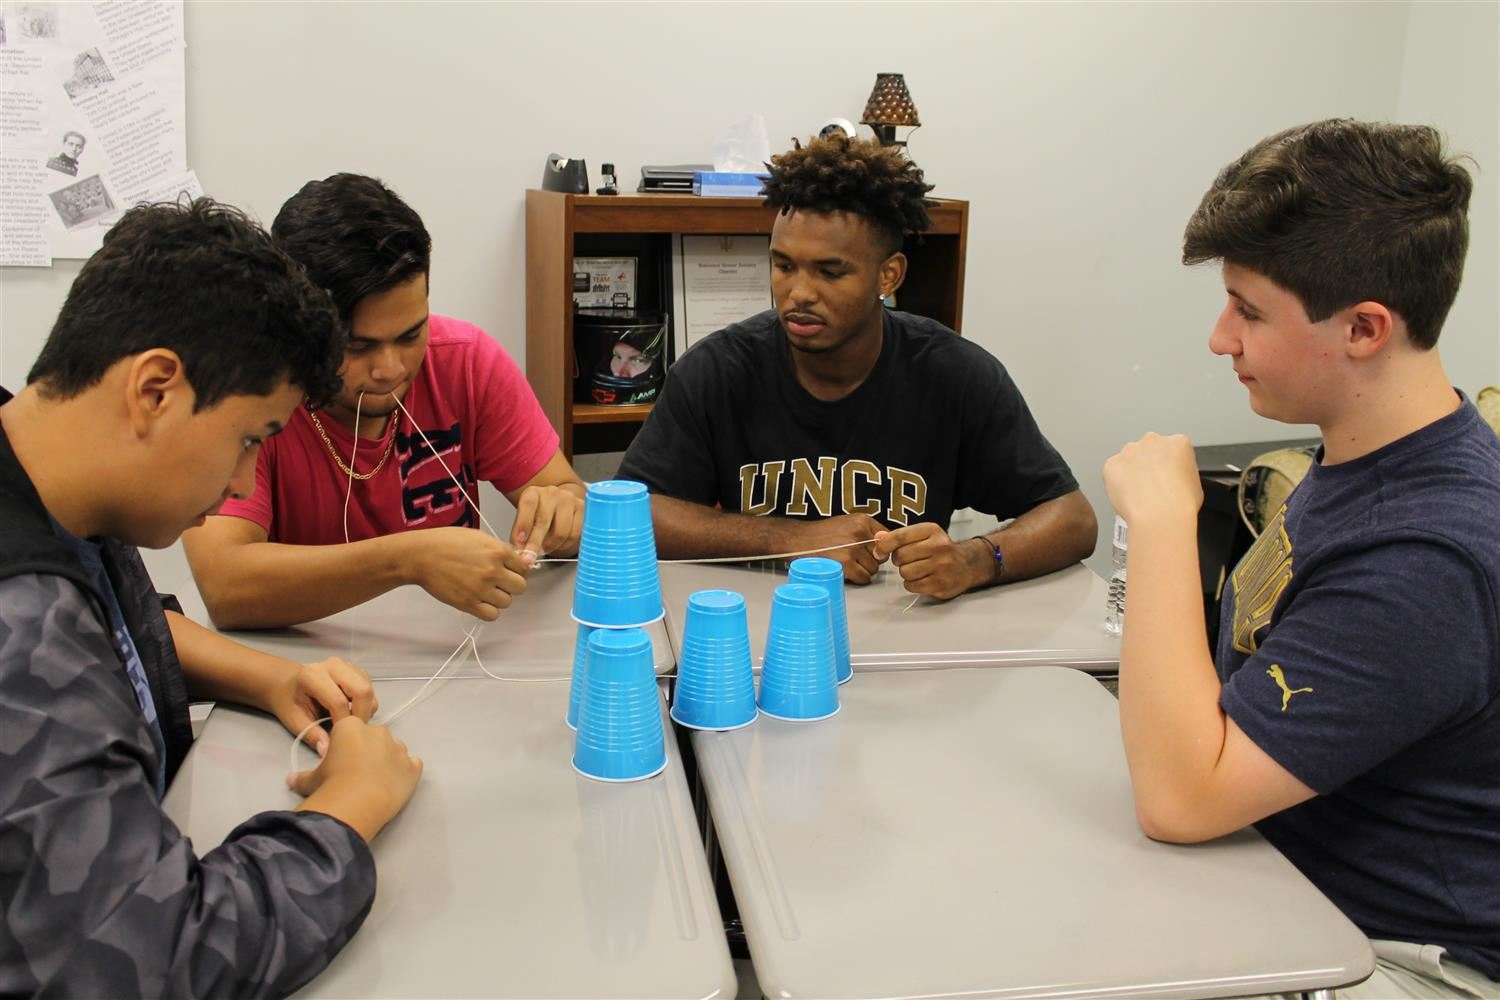 Students participating in string and cup team building activity.